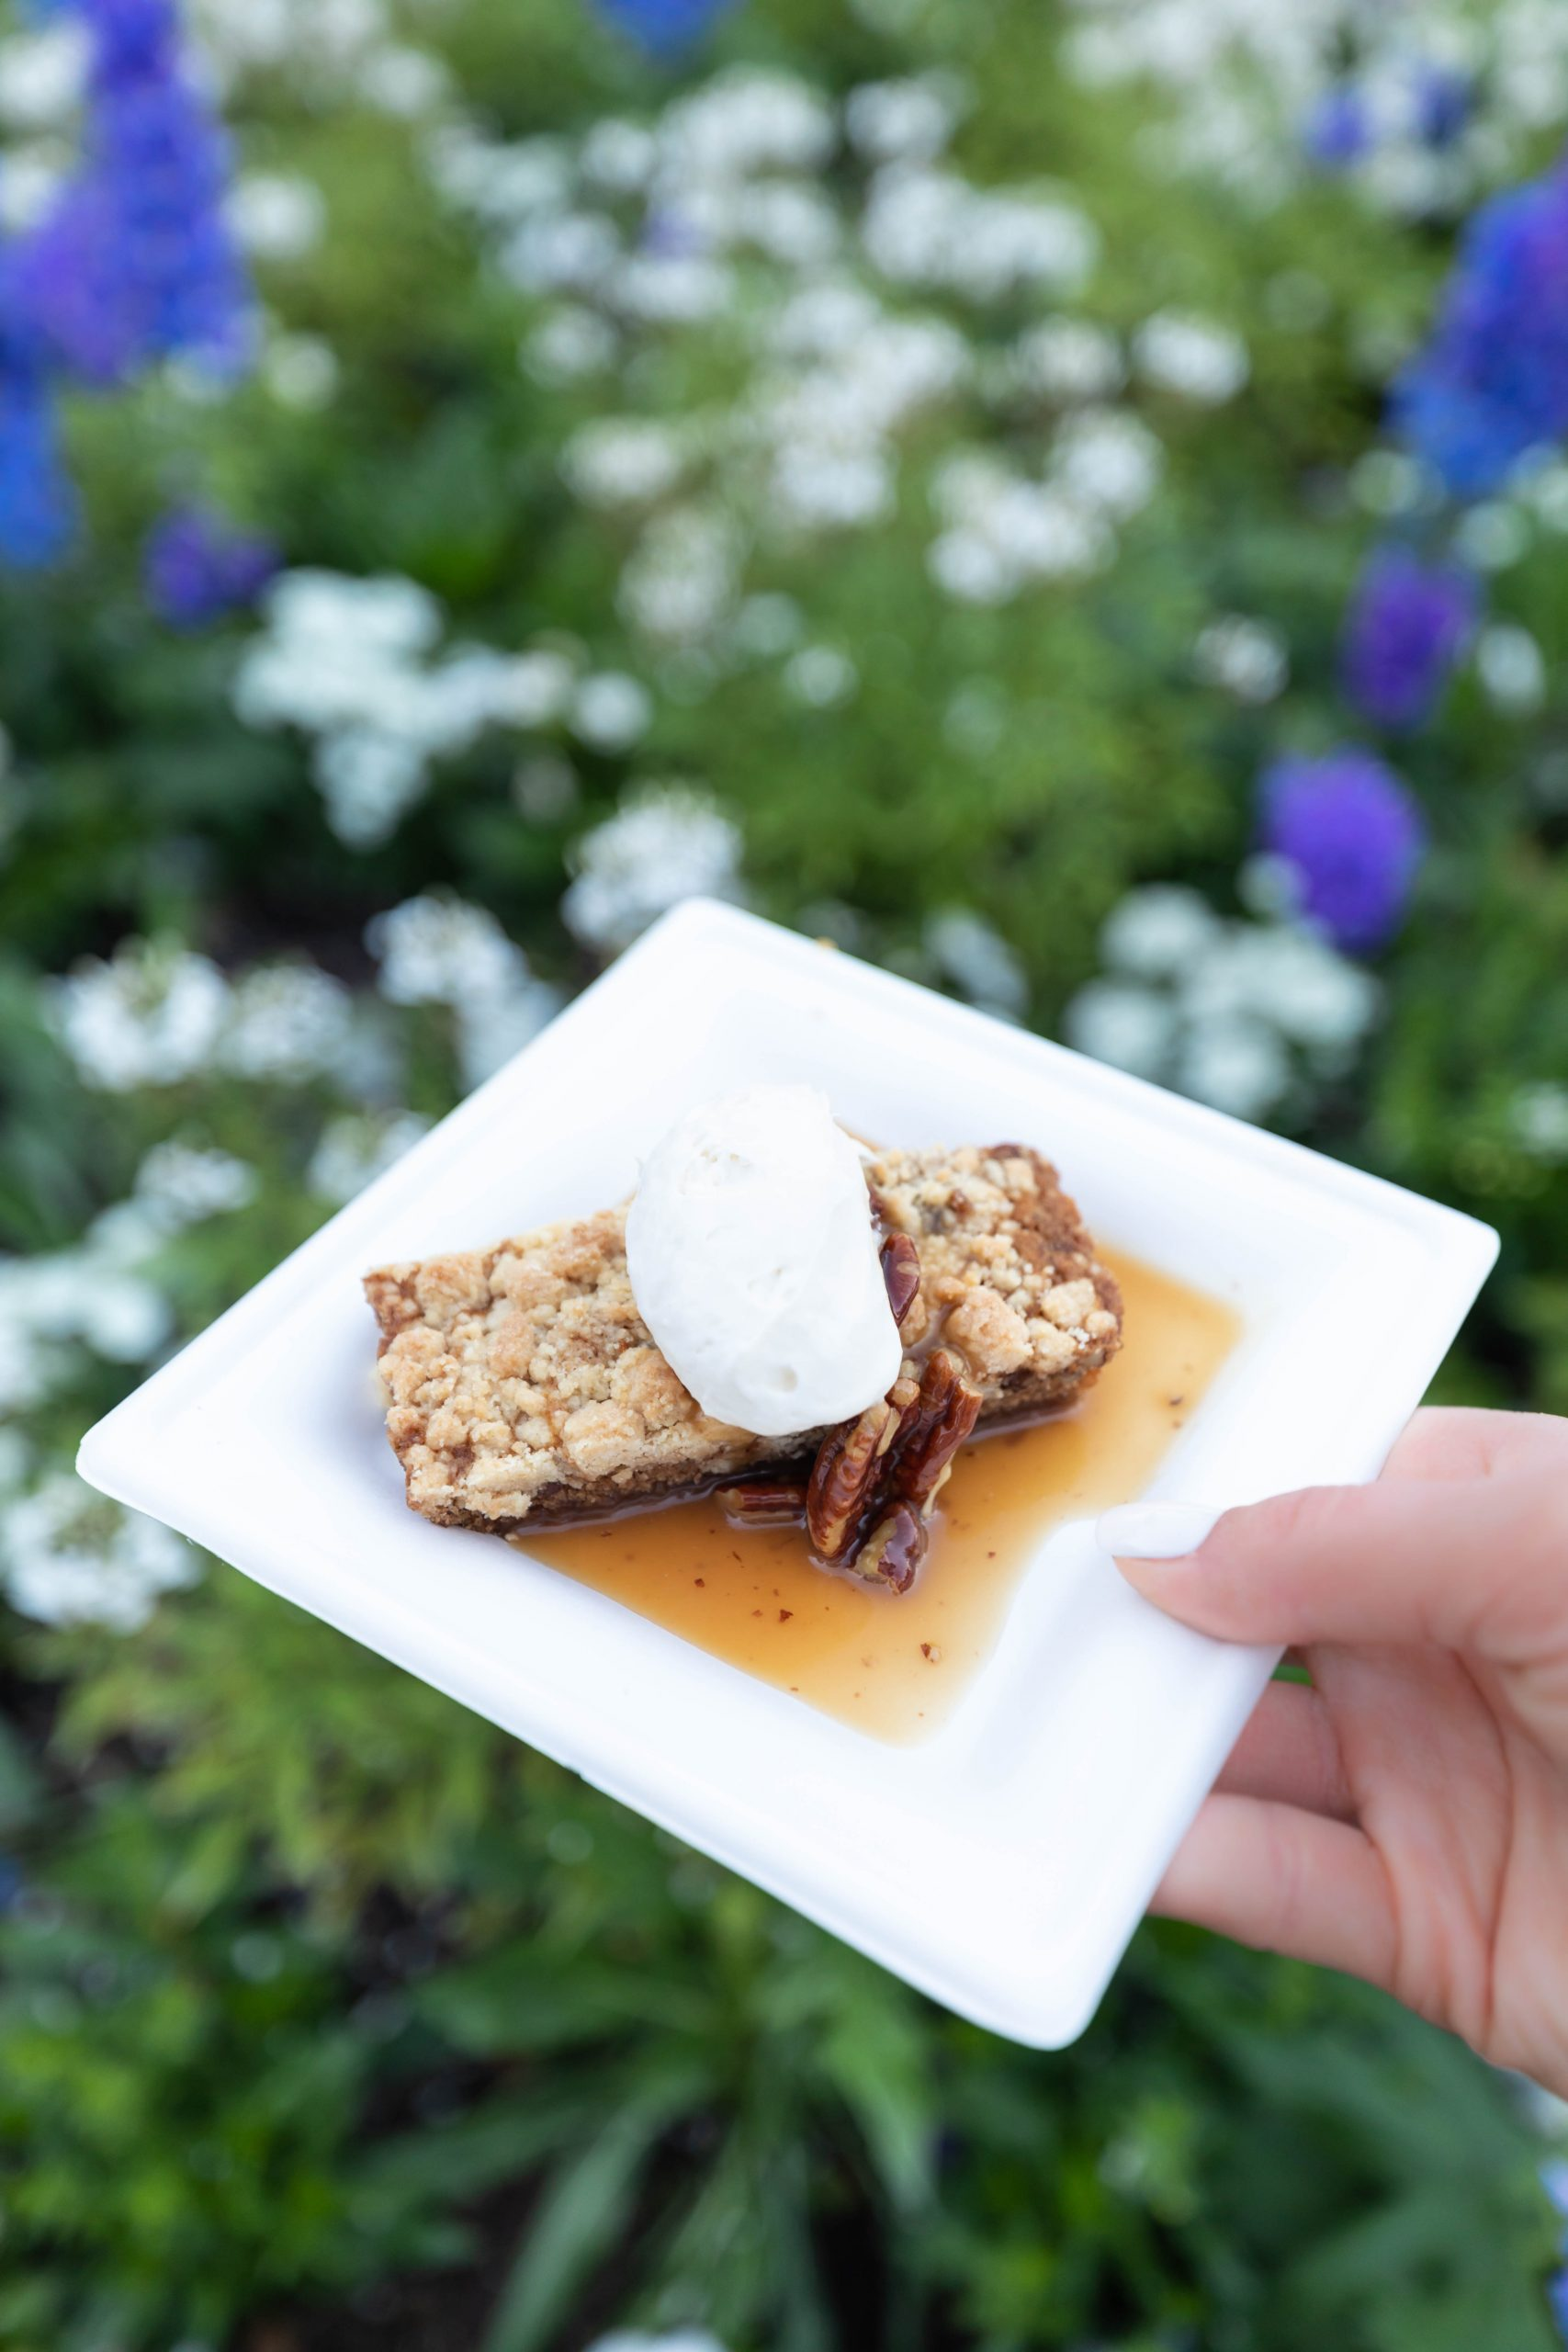 Pecan Cake with Maple Whipped Cream in The American Adventure at Epcot Walt Disney World by Annie Fairfax